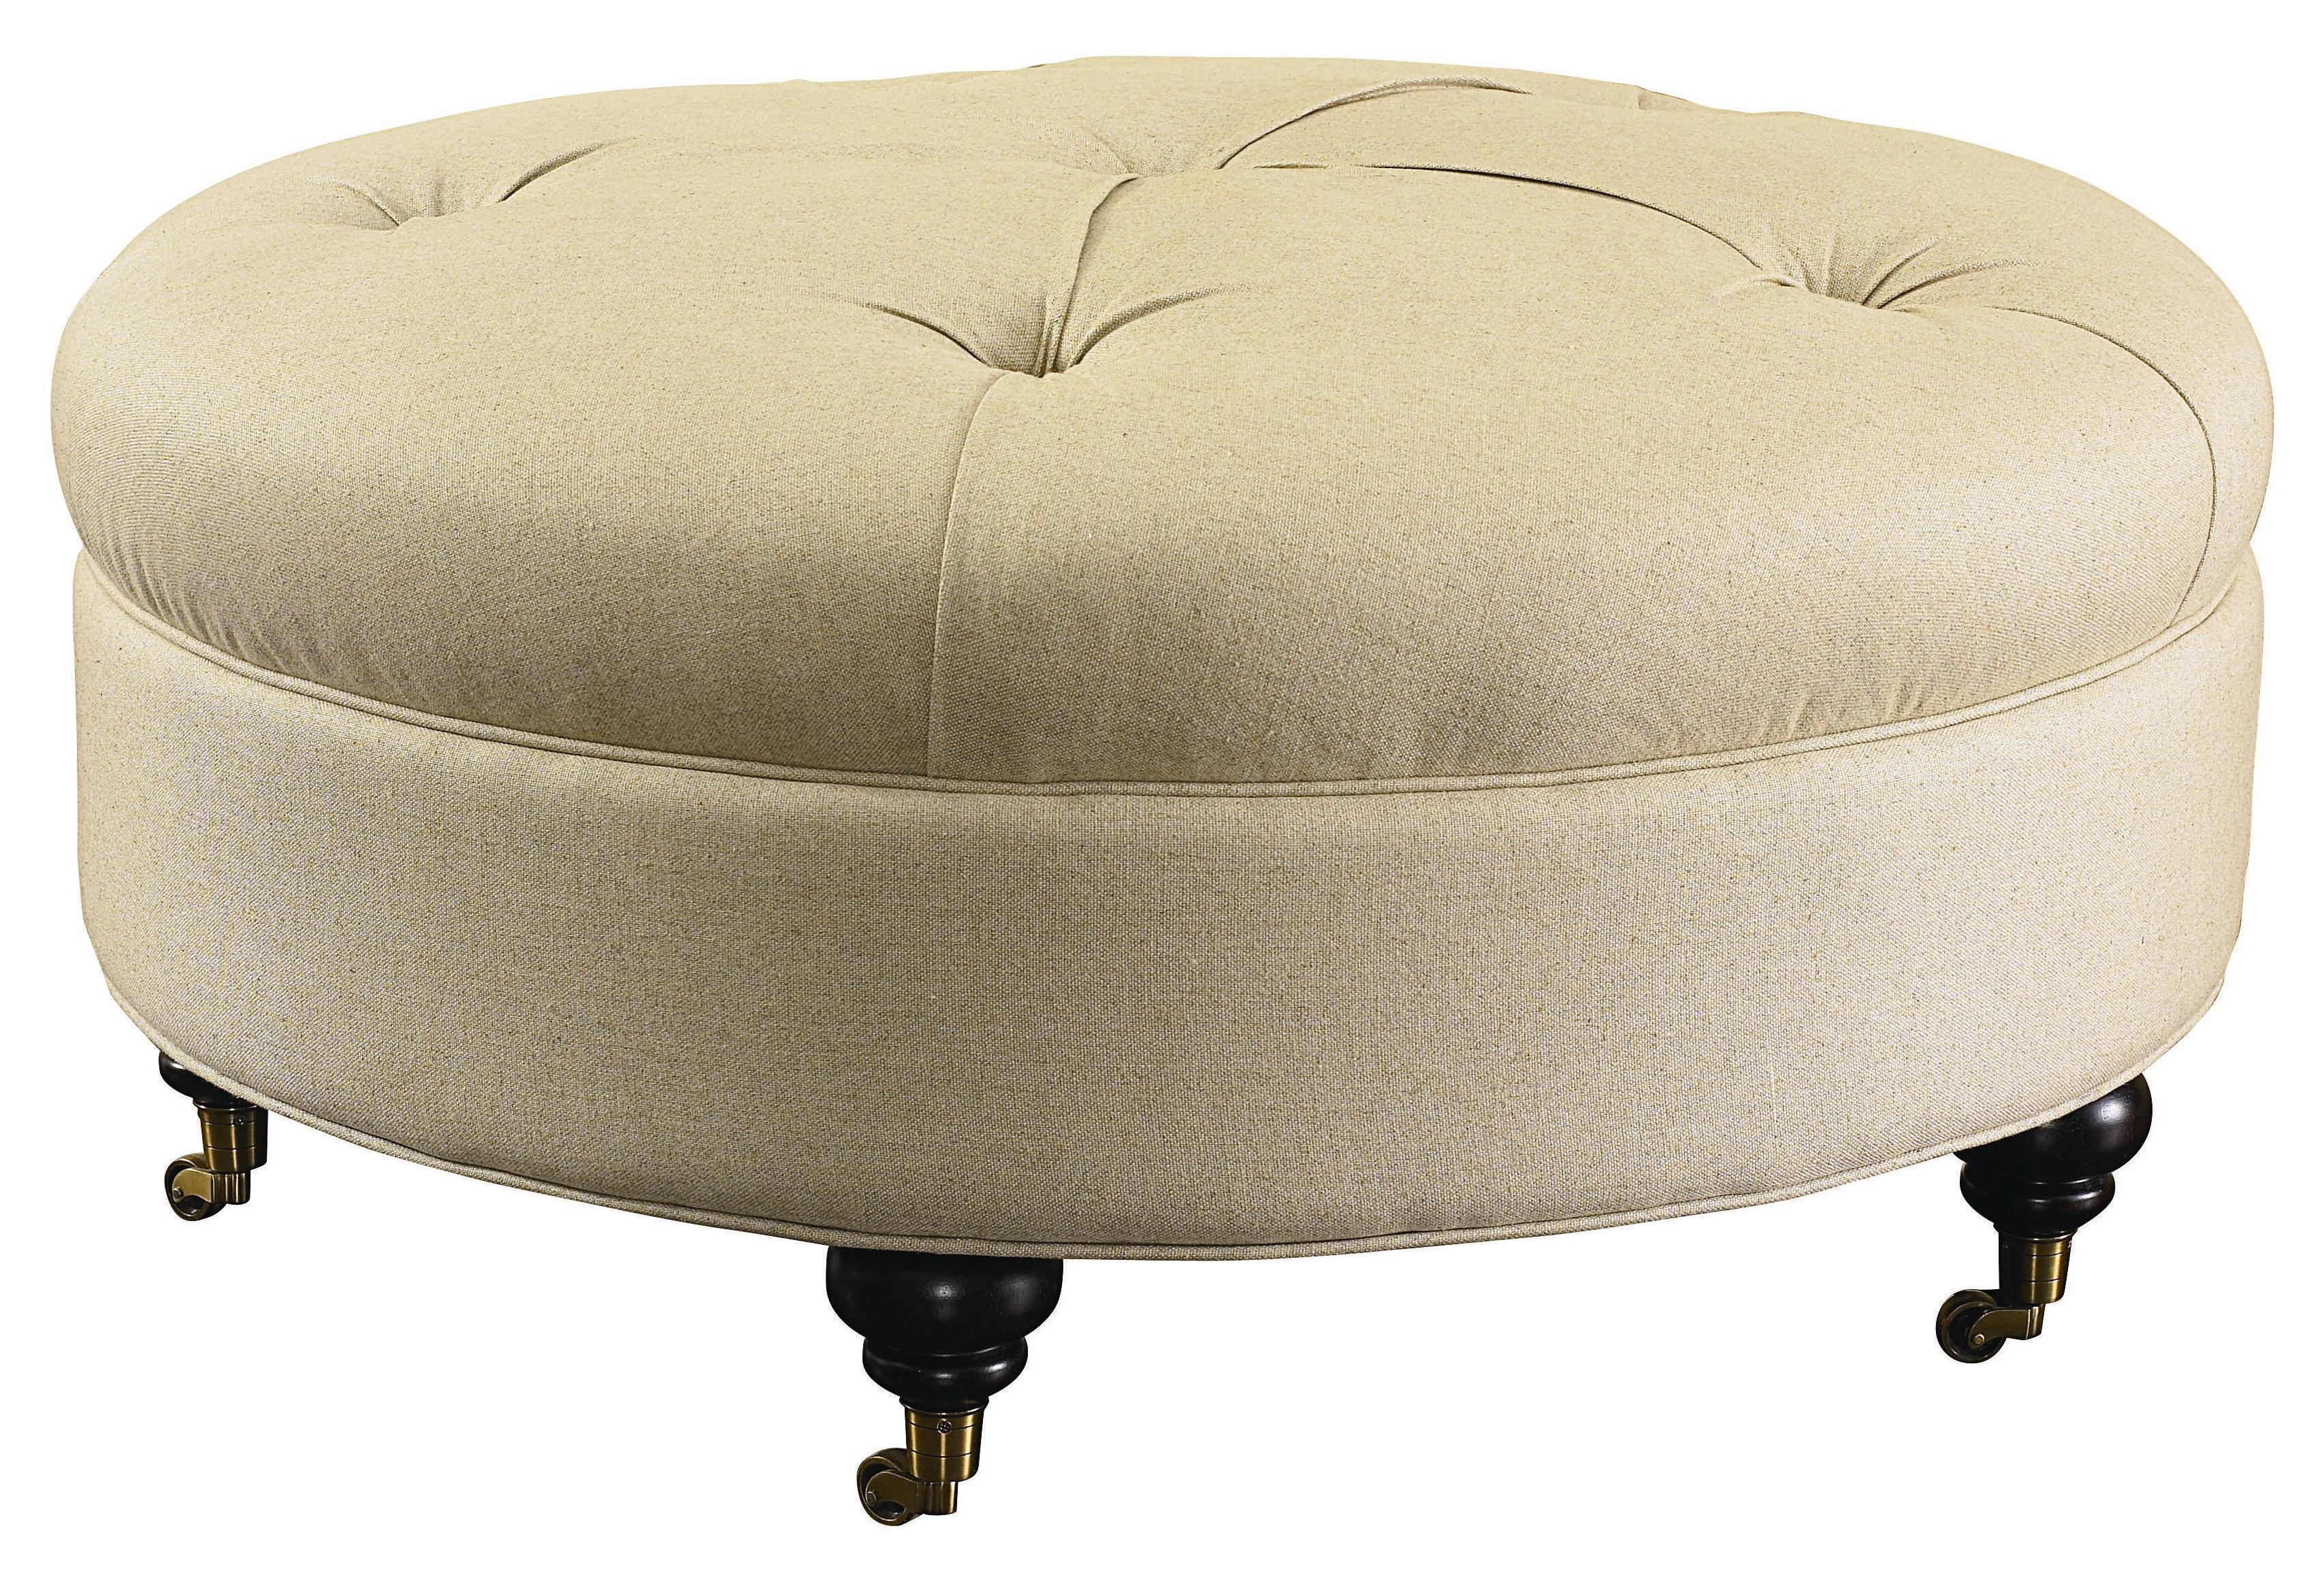 Bassett HGTV HOME Design Studio Round Ottoman   Item Number: 1000 RO TCl